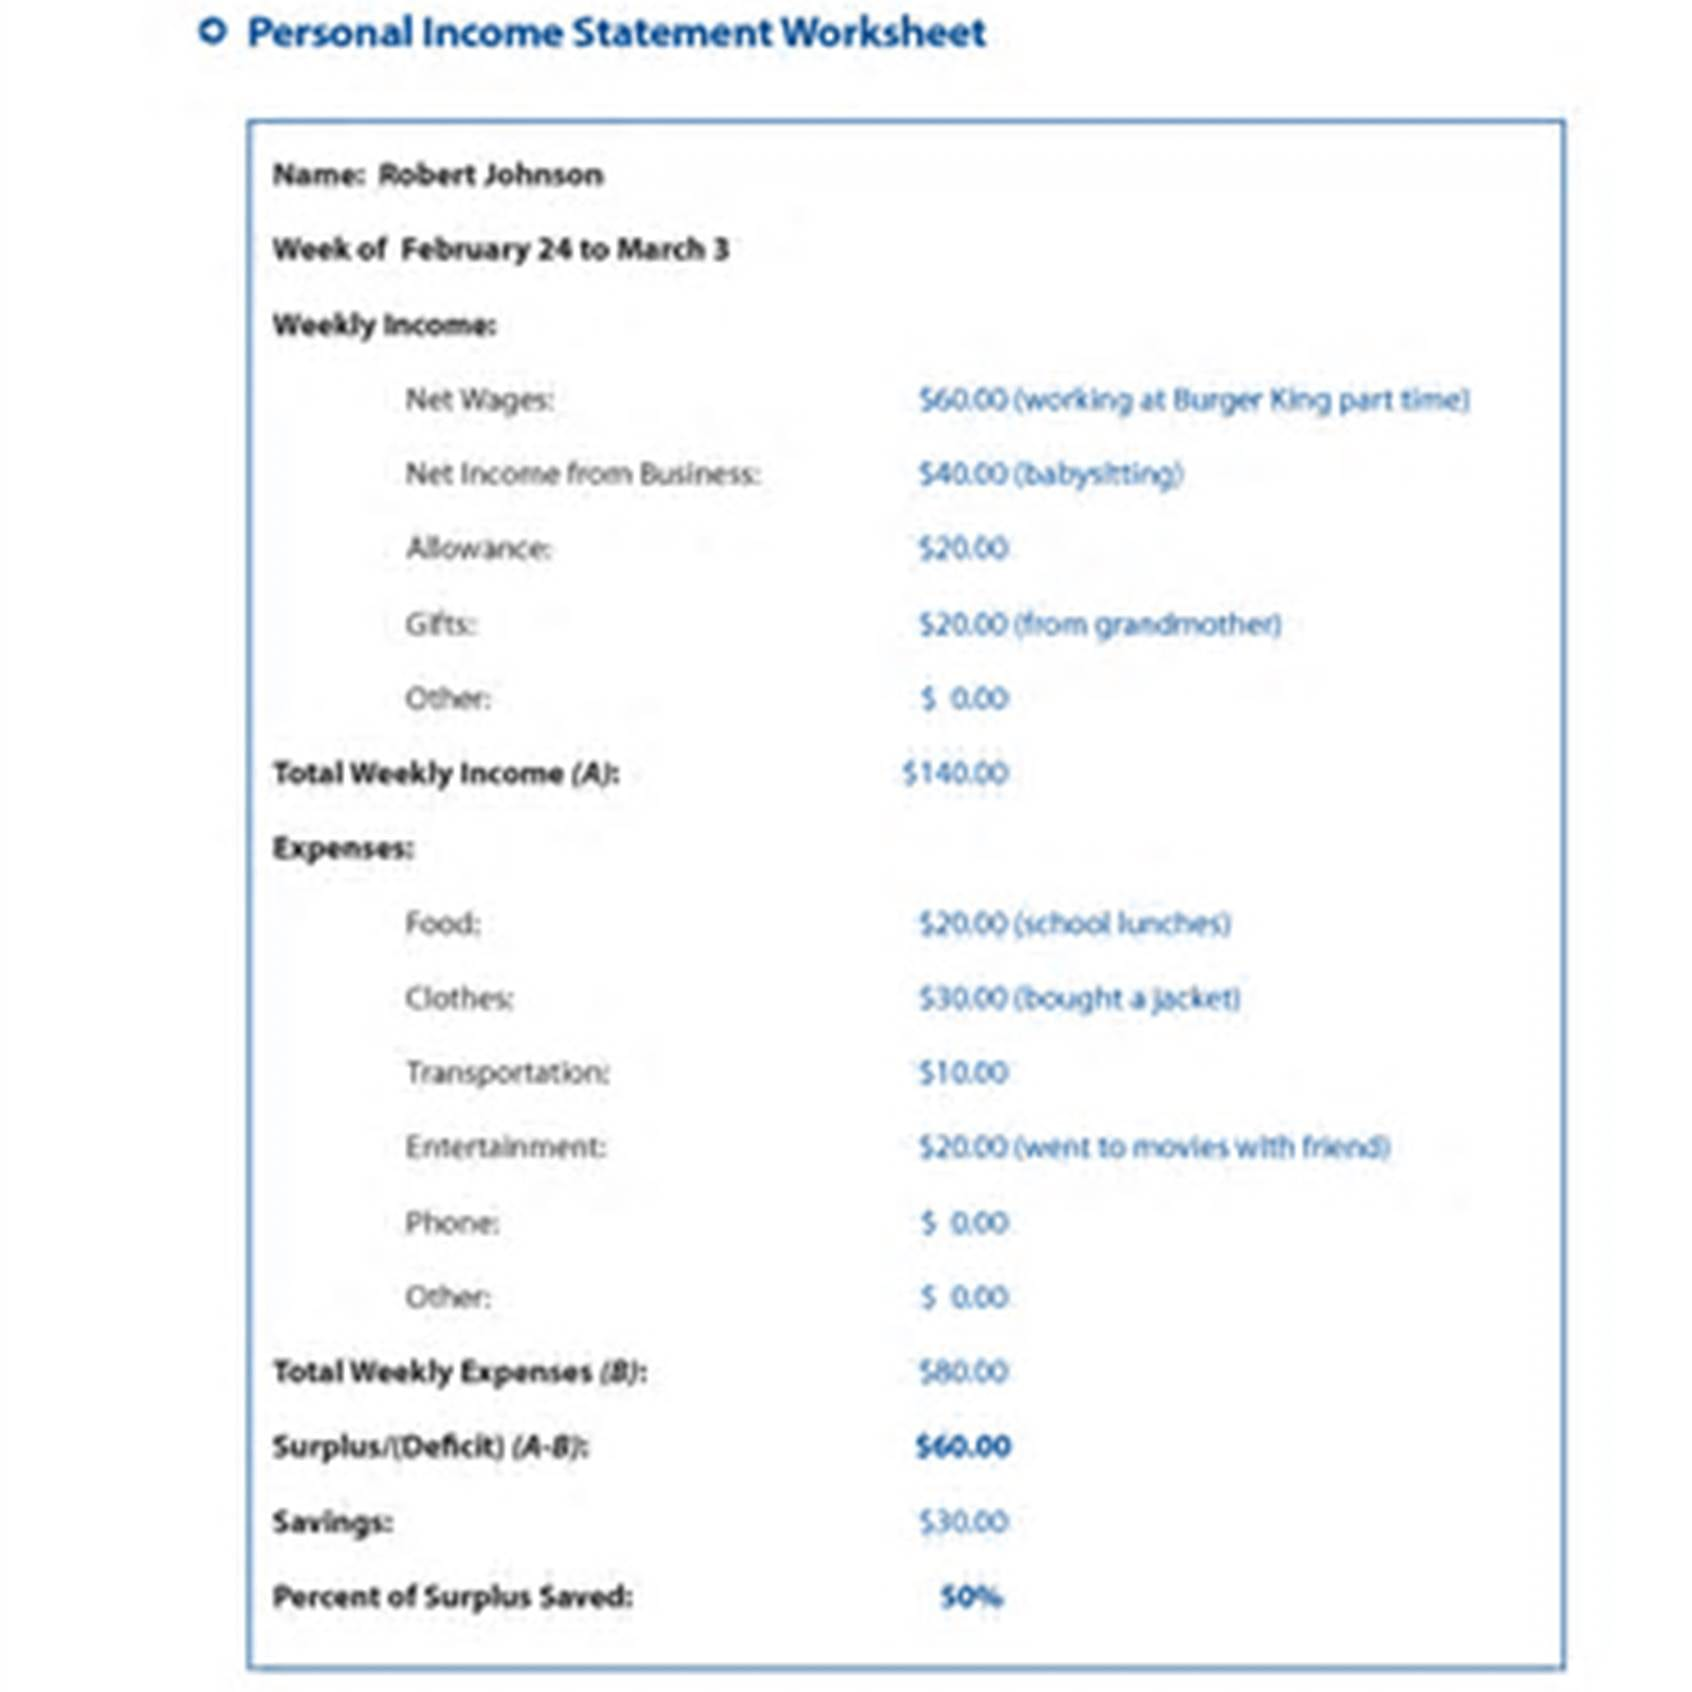 Income Statement Worksheet Income Spreadsheet Income